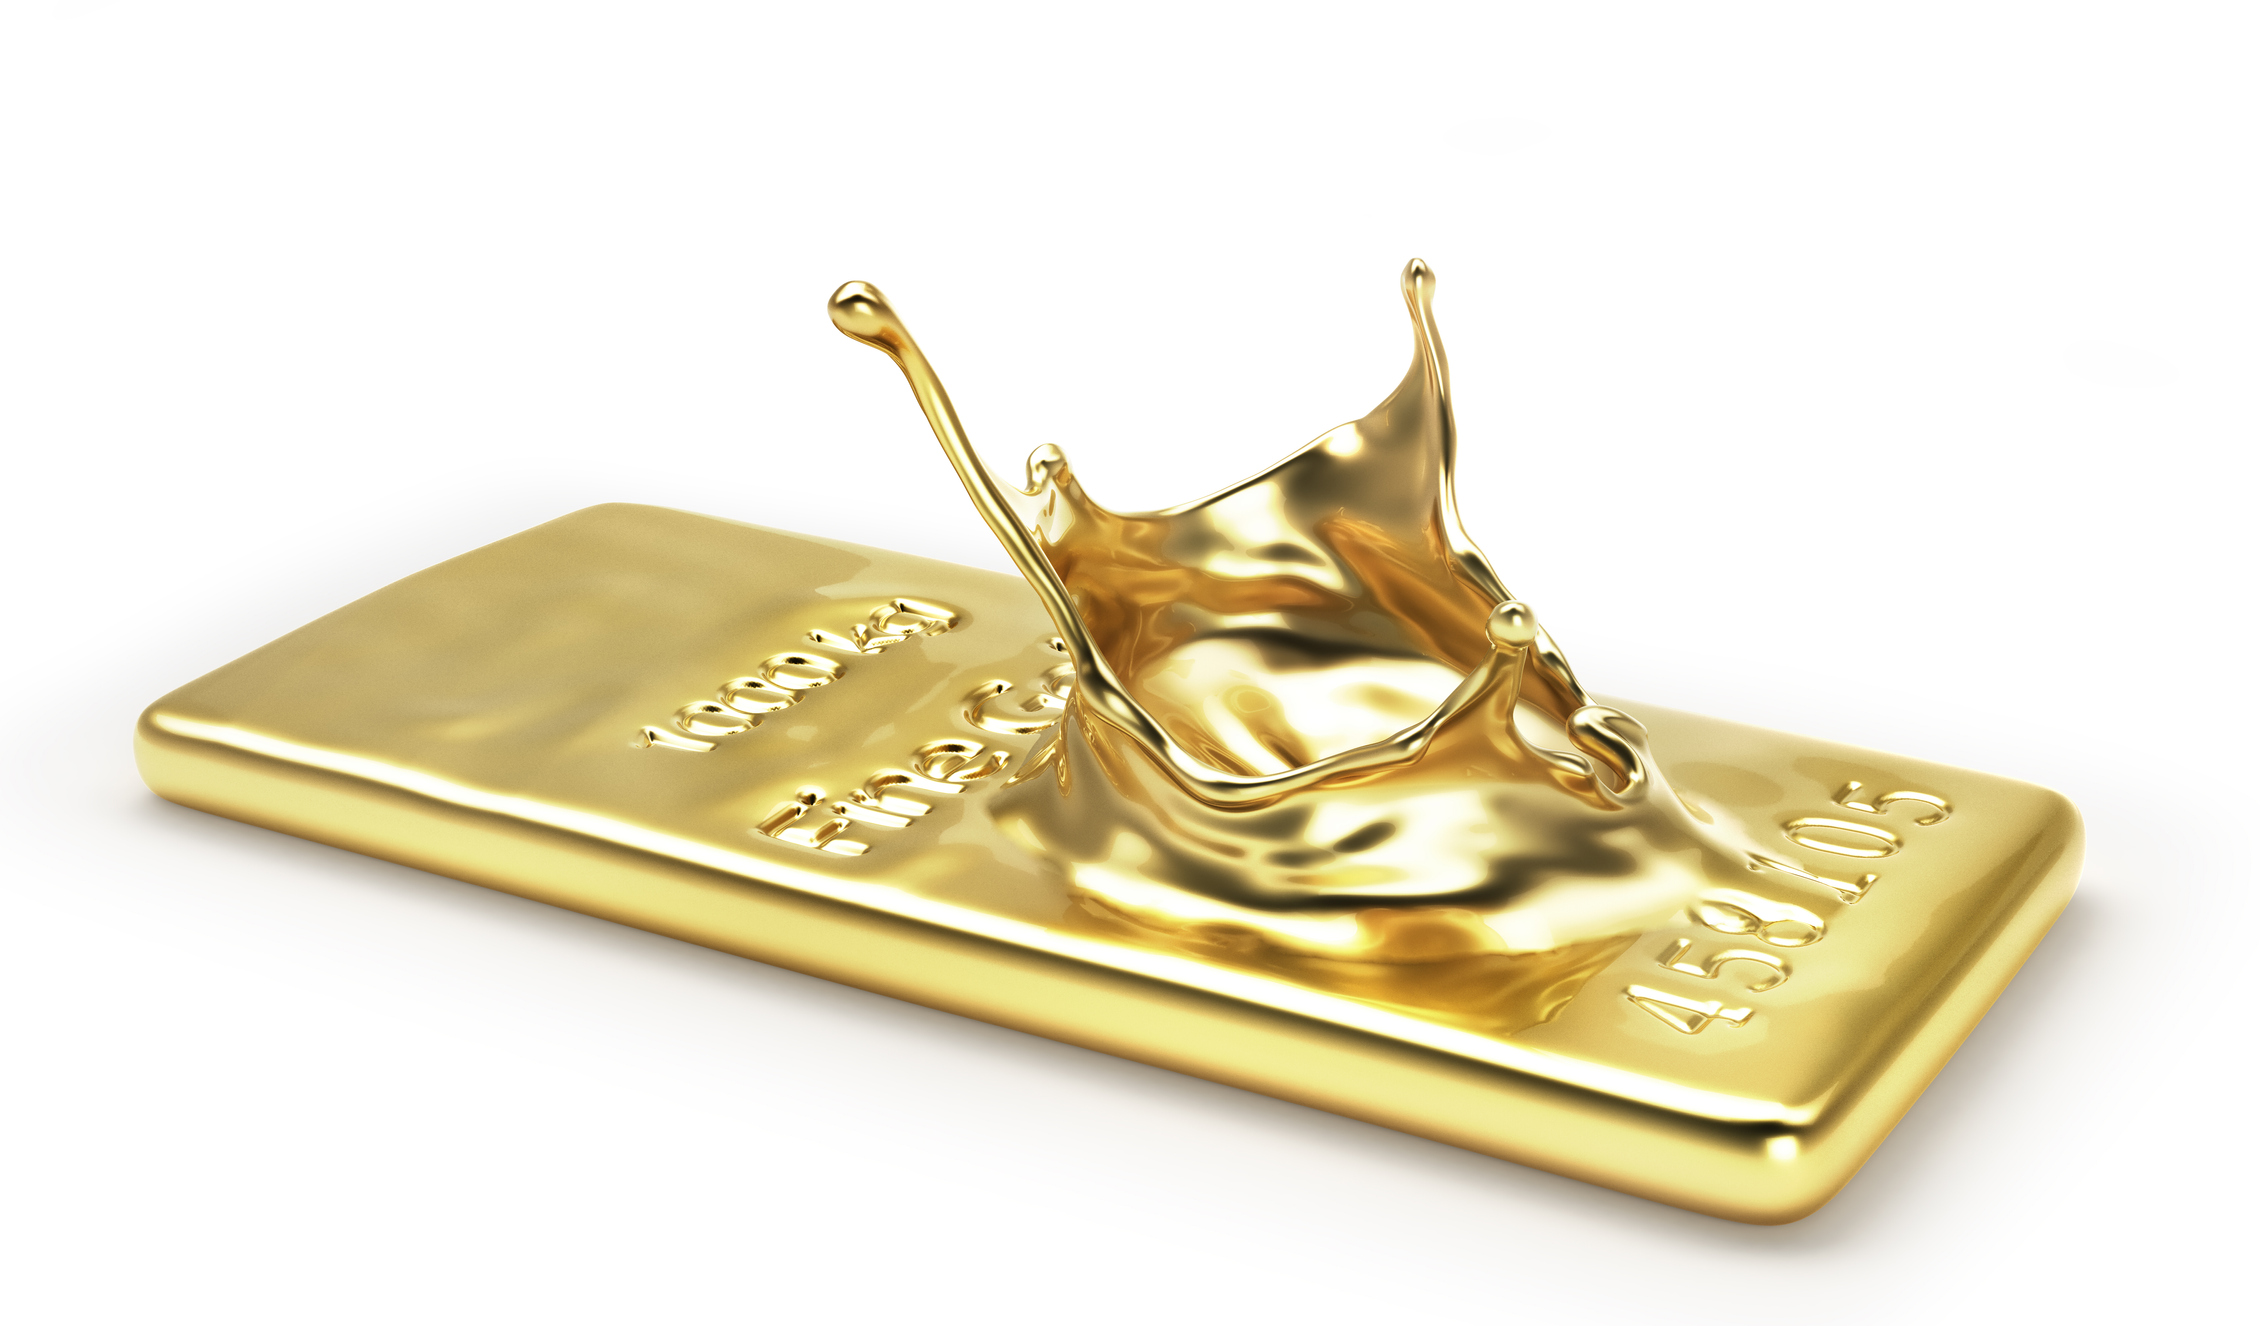 Rountable: Why Gold Is Not Reacting To World Risk Contagion | Nick Barisheff & Lior Gantz - BMG